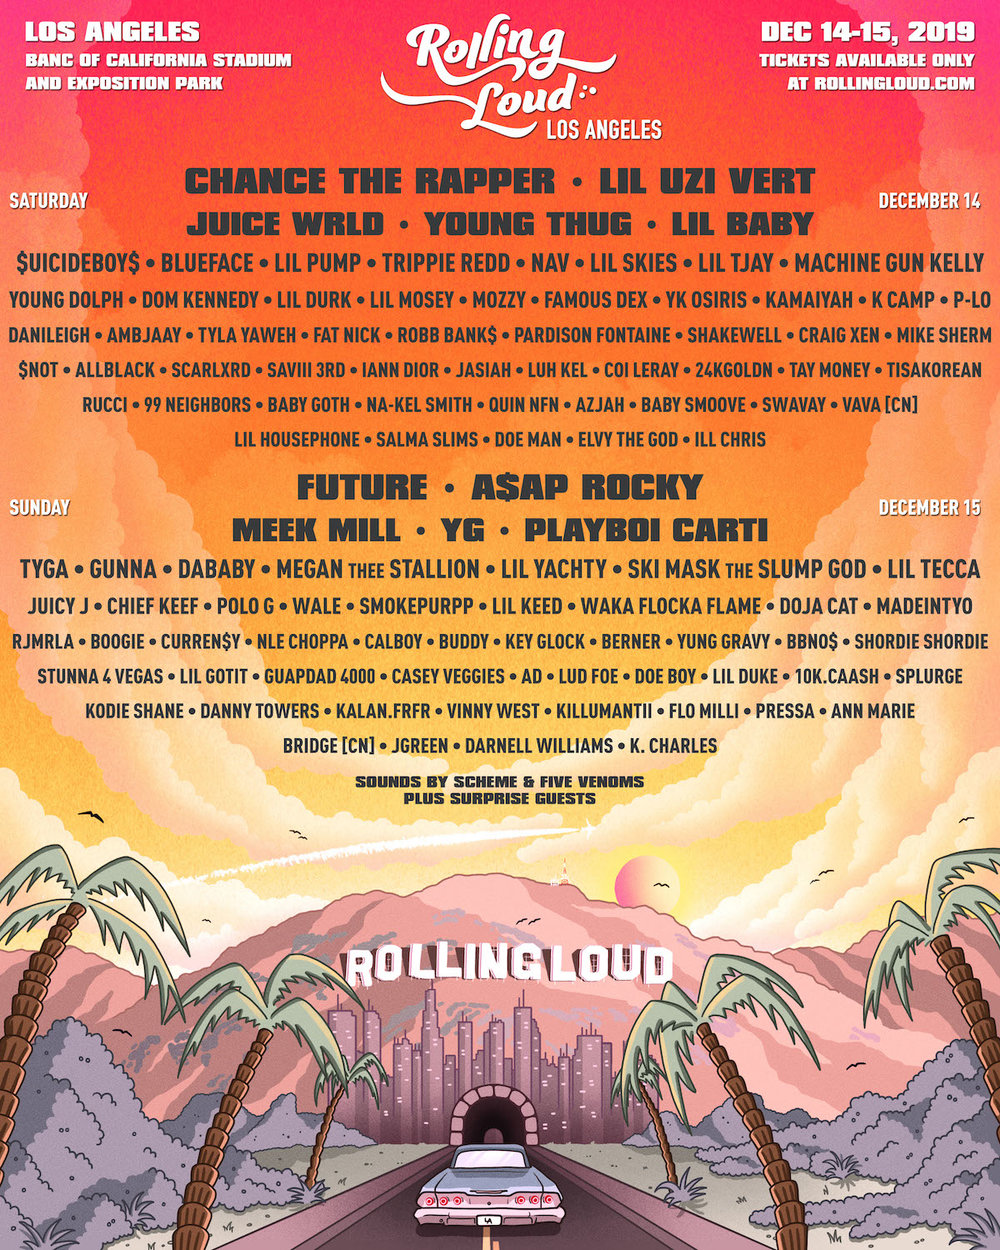 Rolling Loud Music Festival - Best Music Festivals in USA 2020